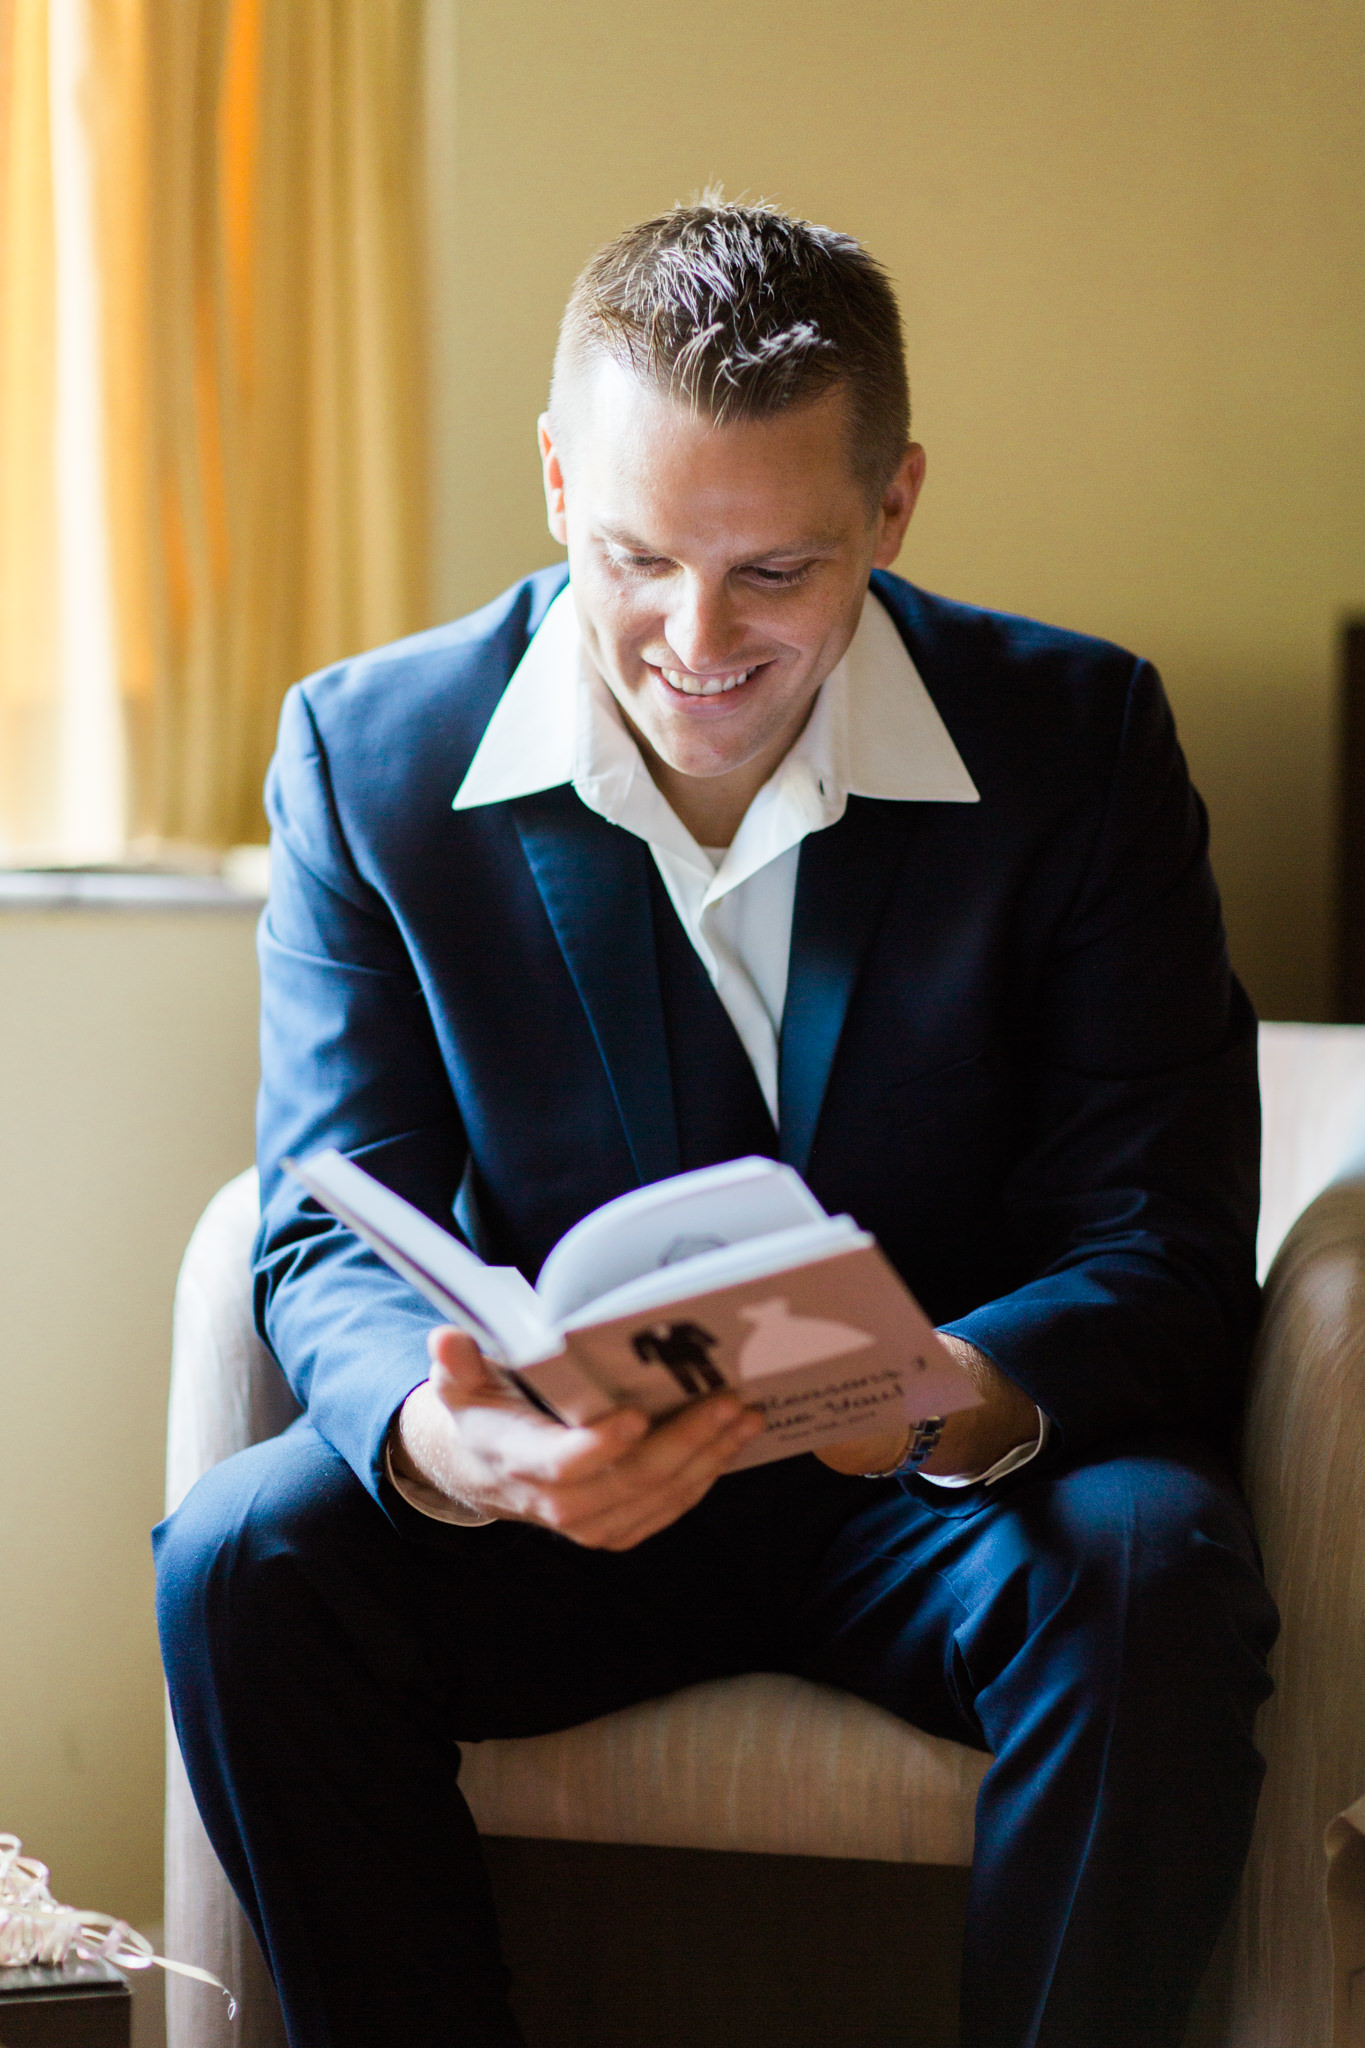 Groom reads personalized wedding book from the bride